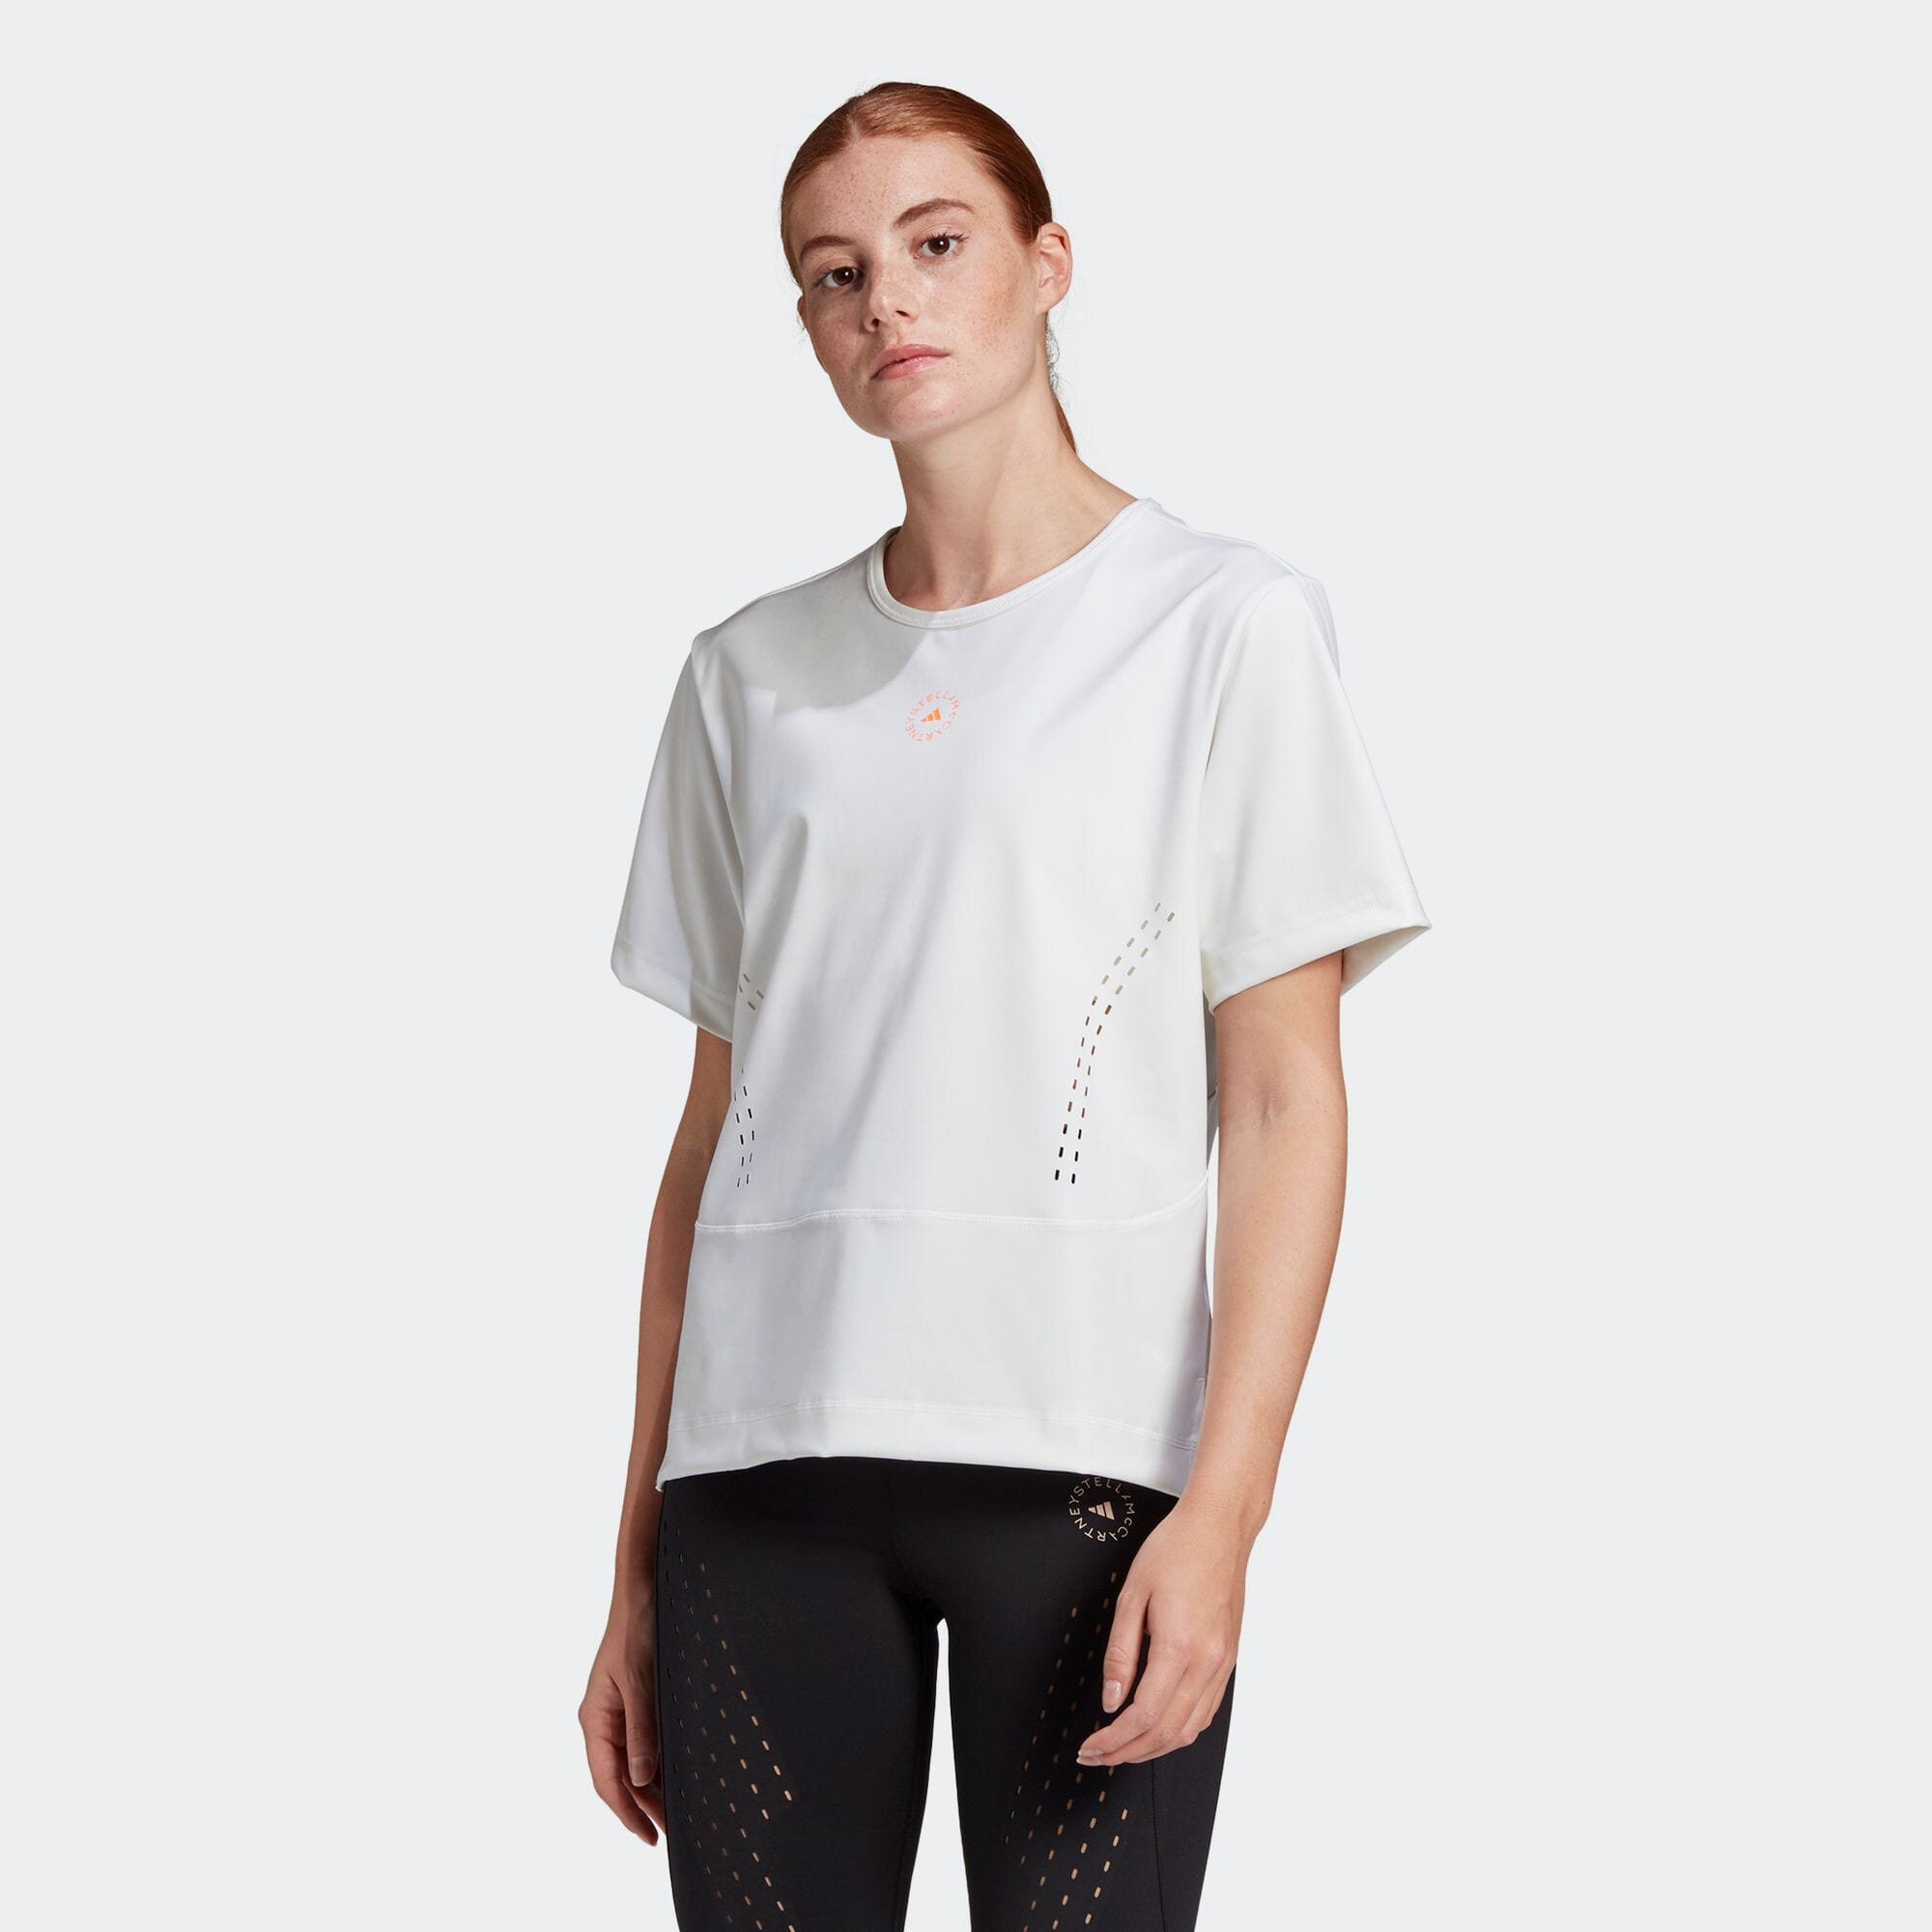 ADIDAS BY STELLA MCCARTNEY TRUESTRENGTH ルーズTシャツ